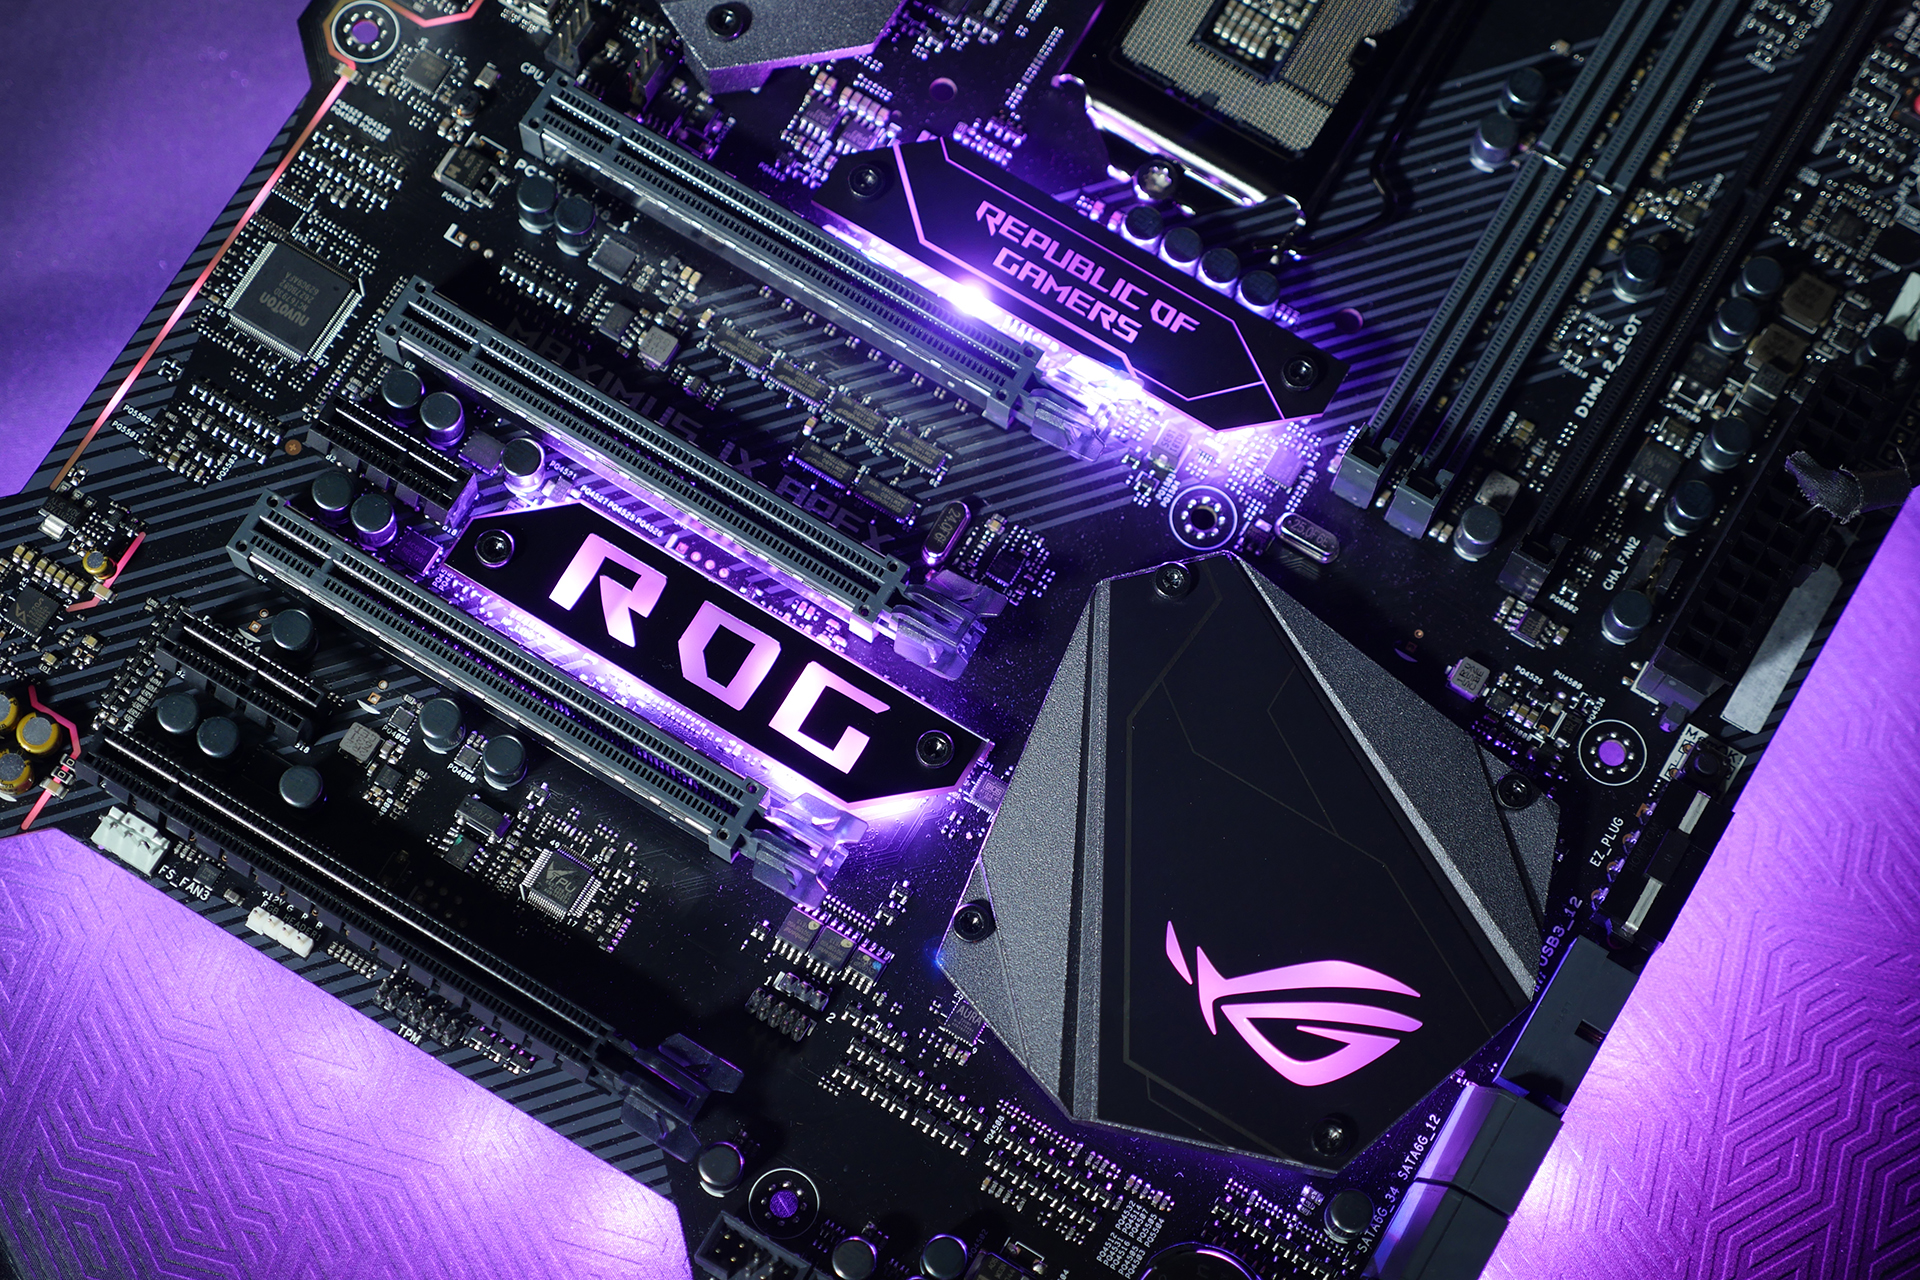 Press Release Rog Unveils Latest Maximus Ix And Strix Gaming Apex Wiring Solutions Ltd 4 Nameplate1